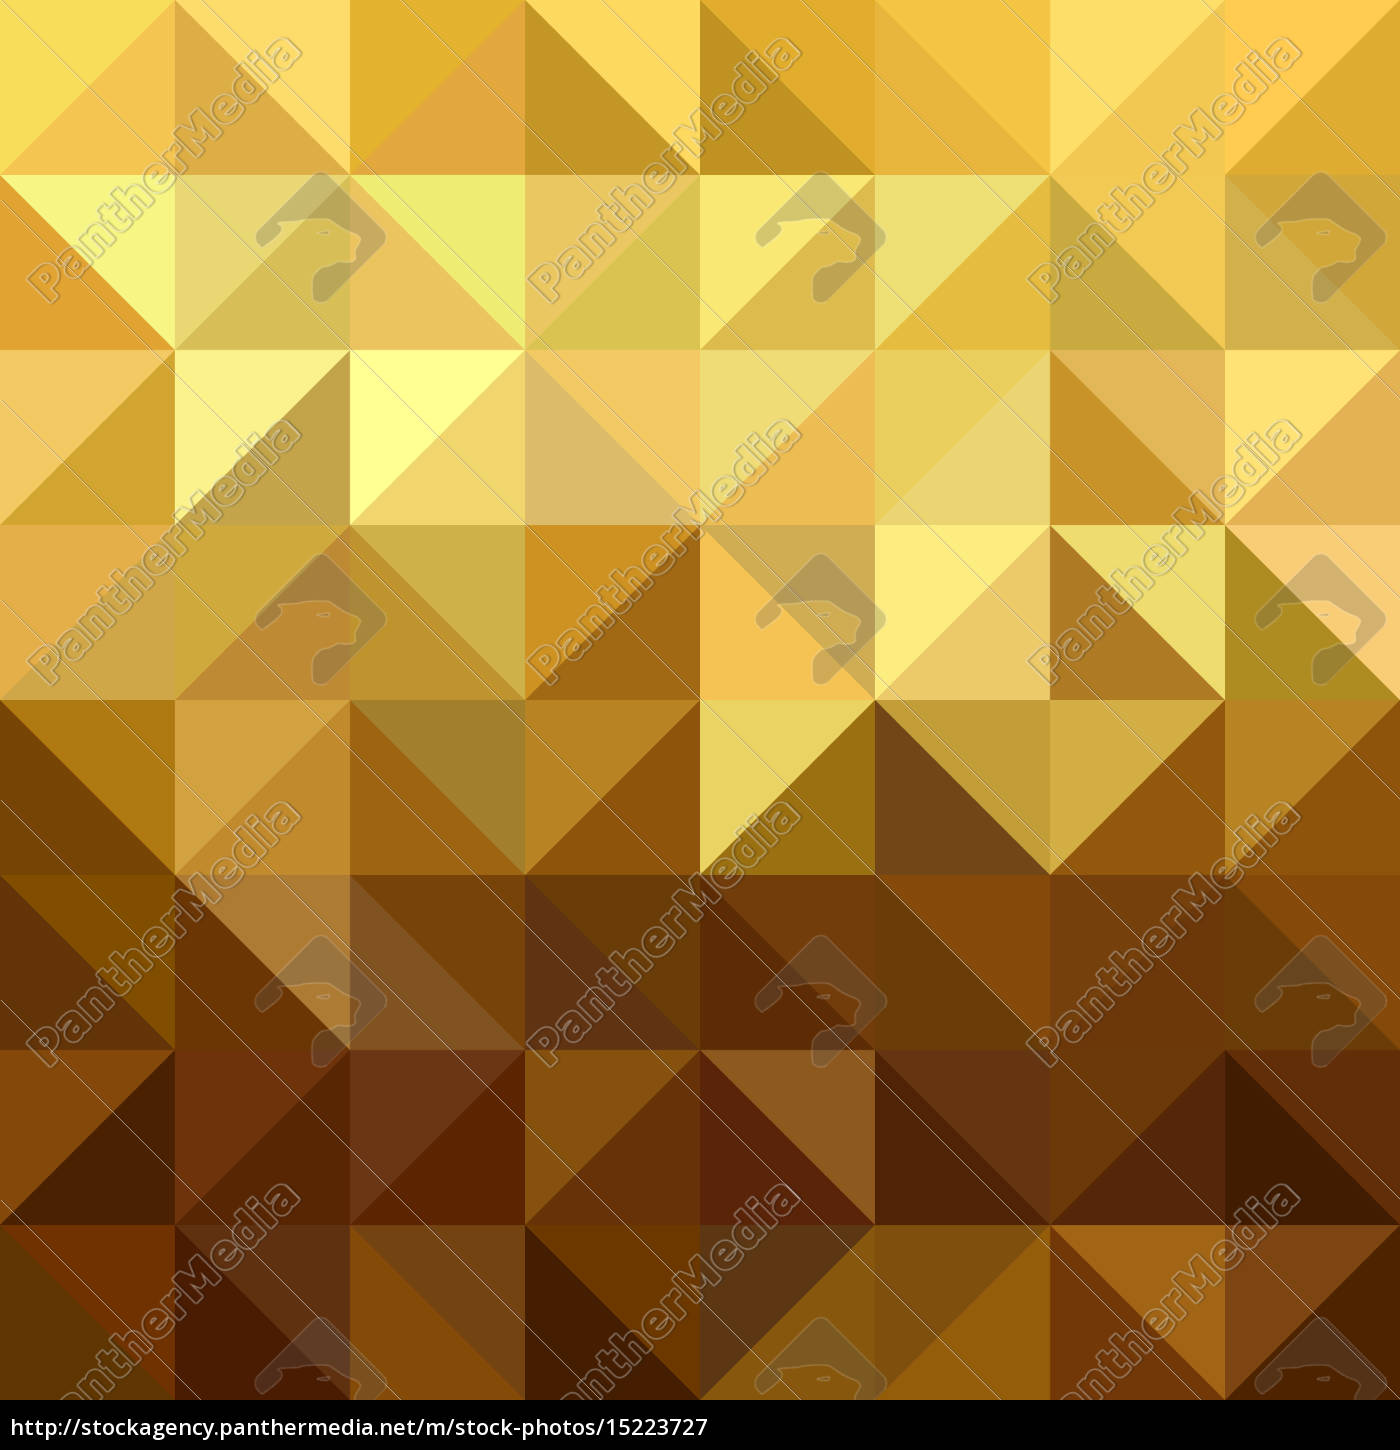 Background Gold Free Image On Pixabay 4